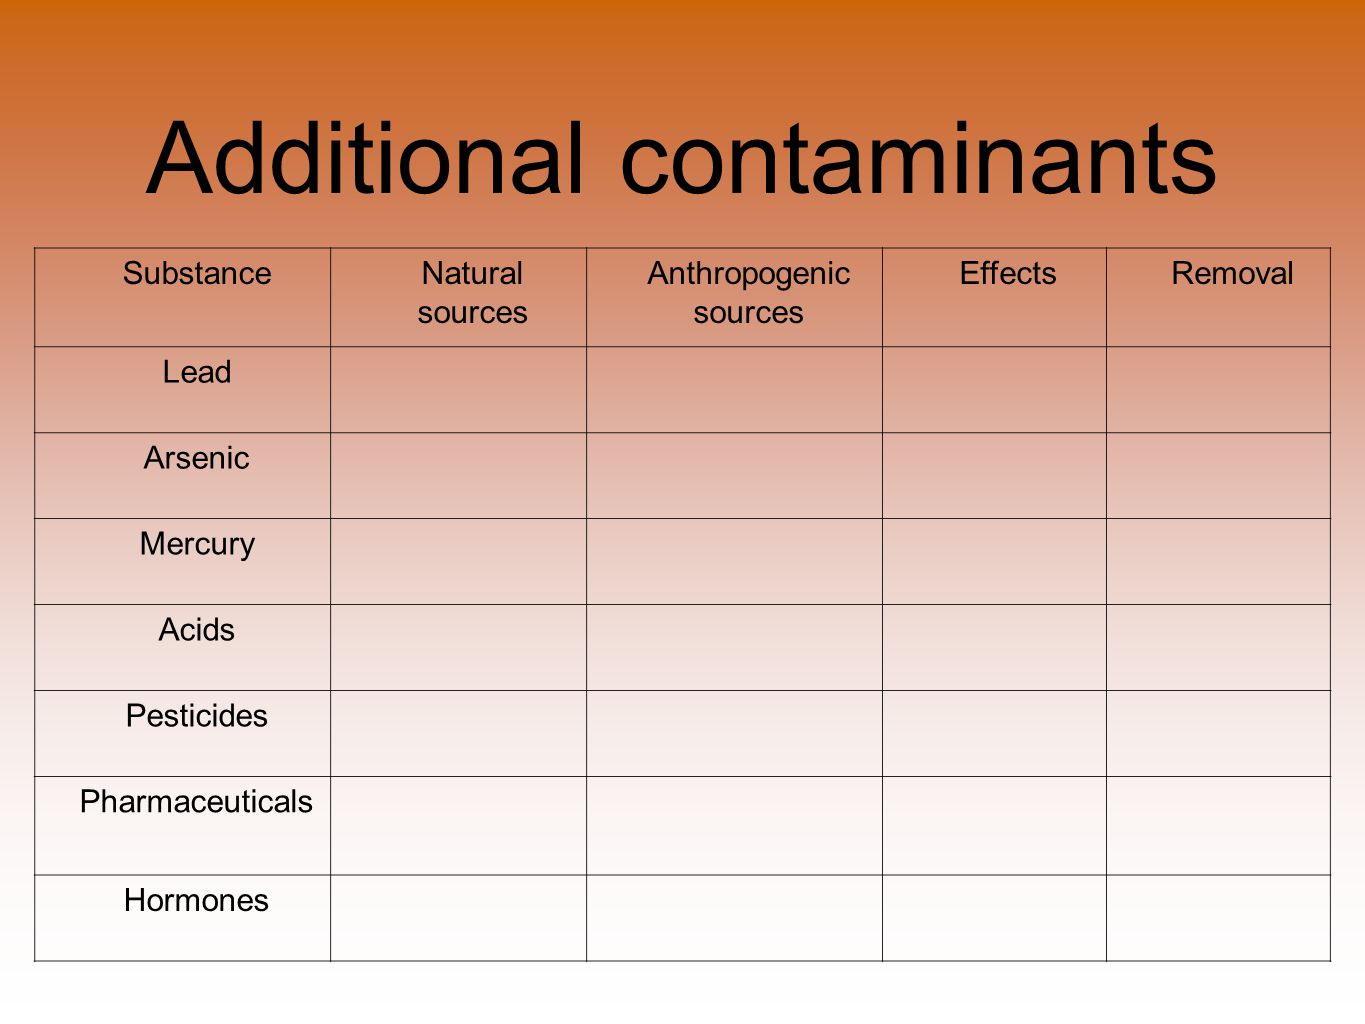 Additional contaminants SubstanceNatural sources Anthropogenic sources EffectsRemoval Lead Arsenic Mercury Acids Pesticides Pharmaceuticals Hormones